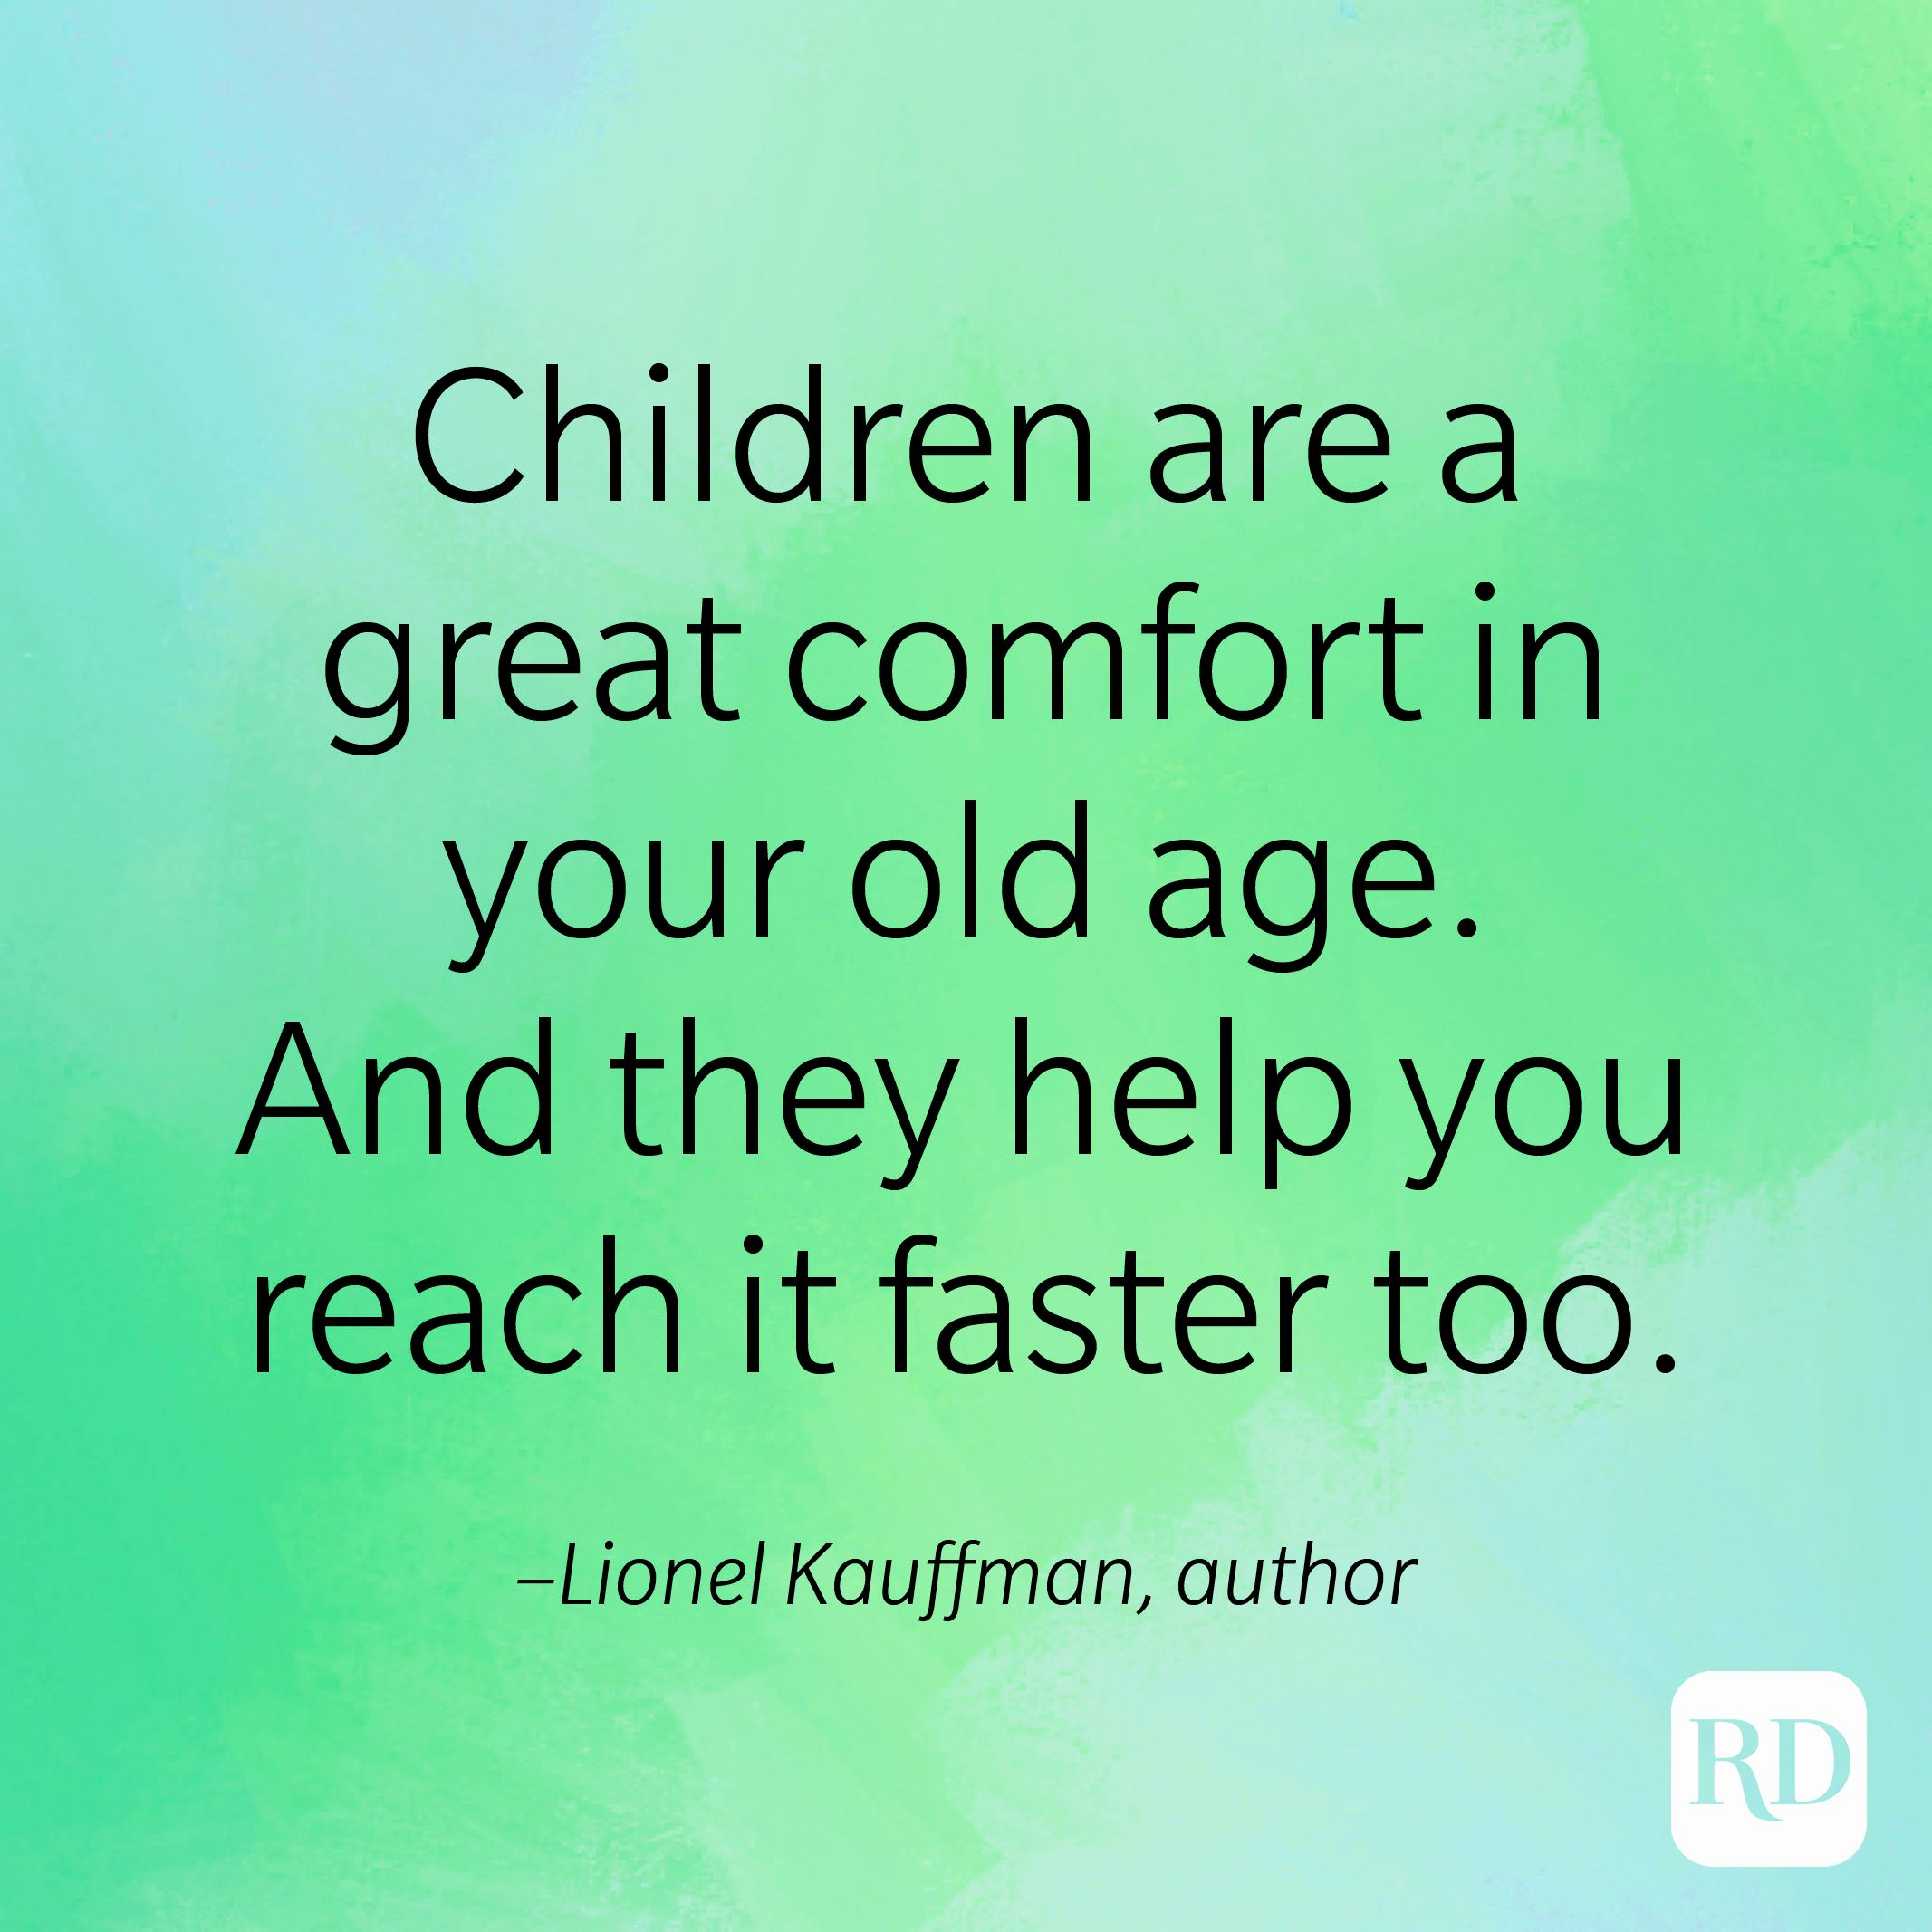 """""""Children are a great comfort in your old age. And they help you reach it faster too."""" –Lionel Kauffman, author"""